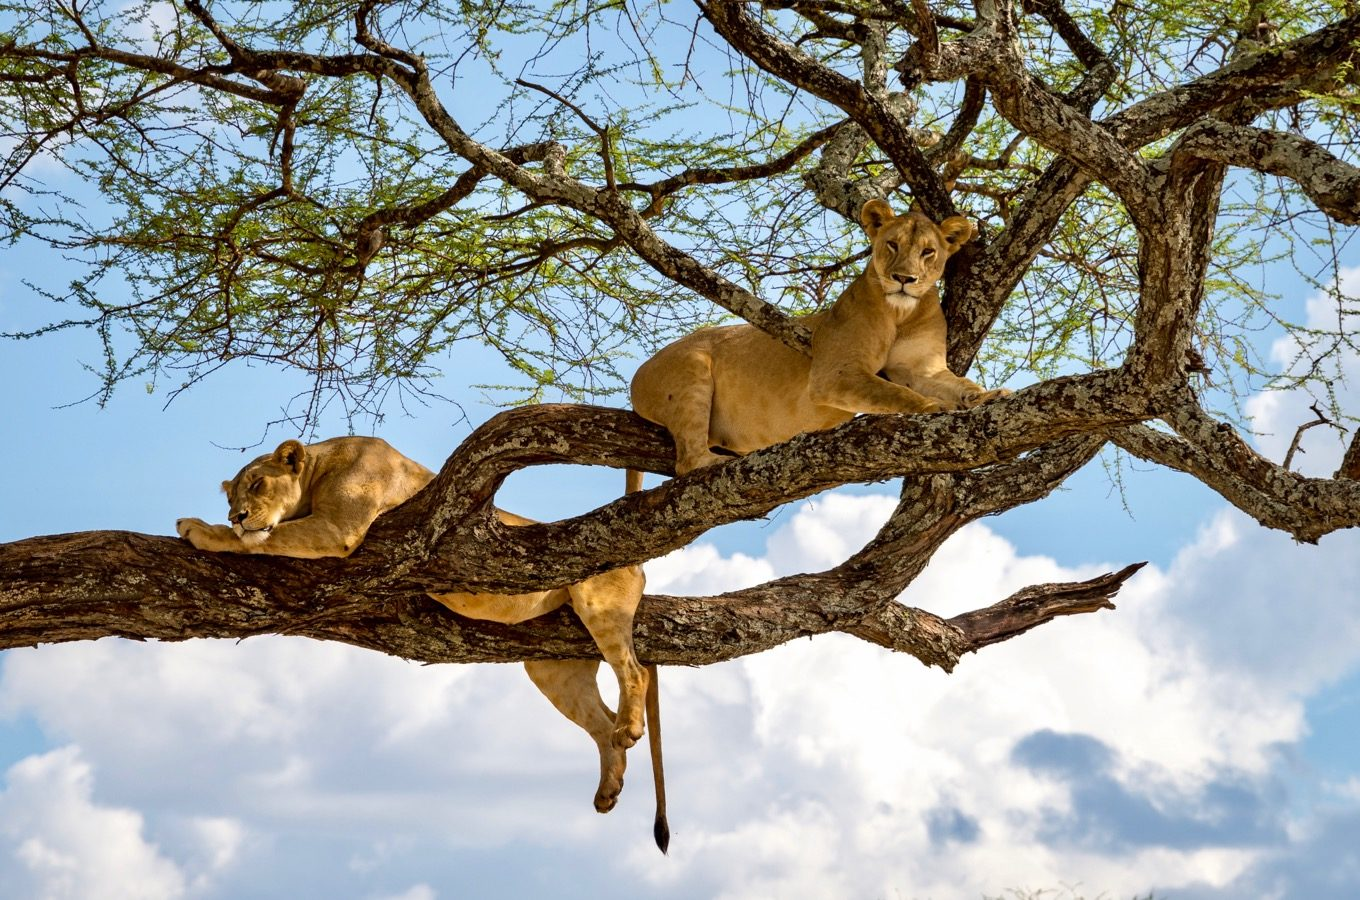 Lions lie on a tree in Lake Manyara National Park. They are also called tree lions.